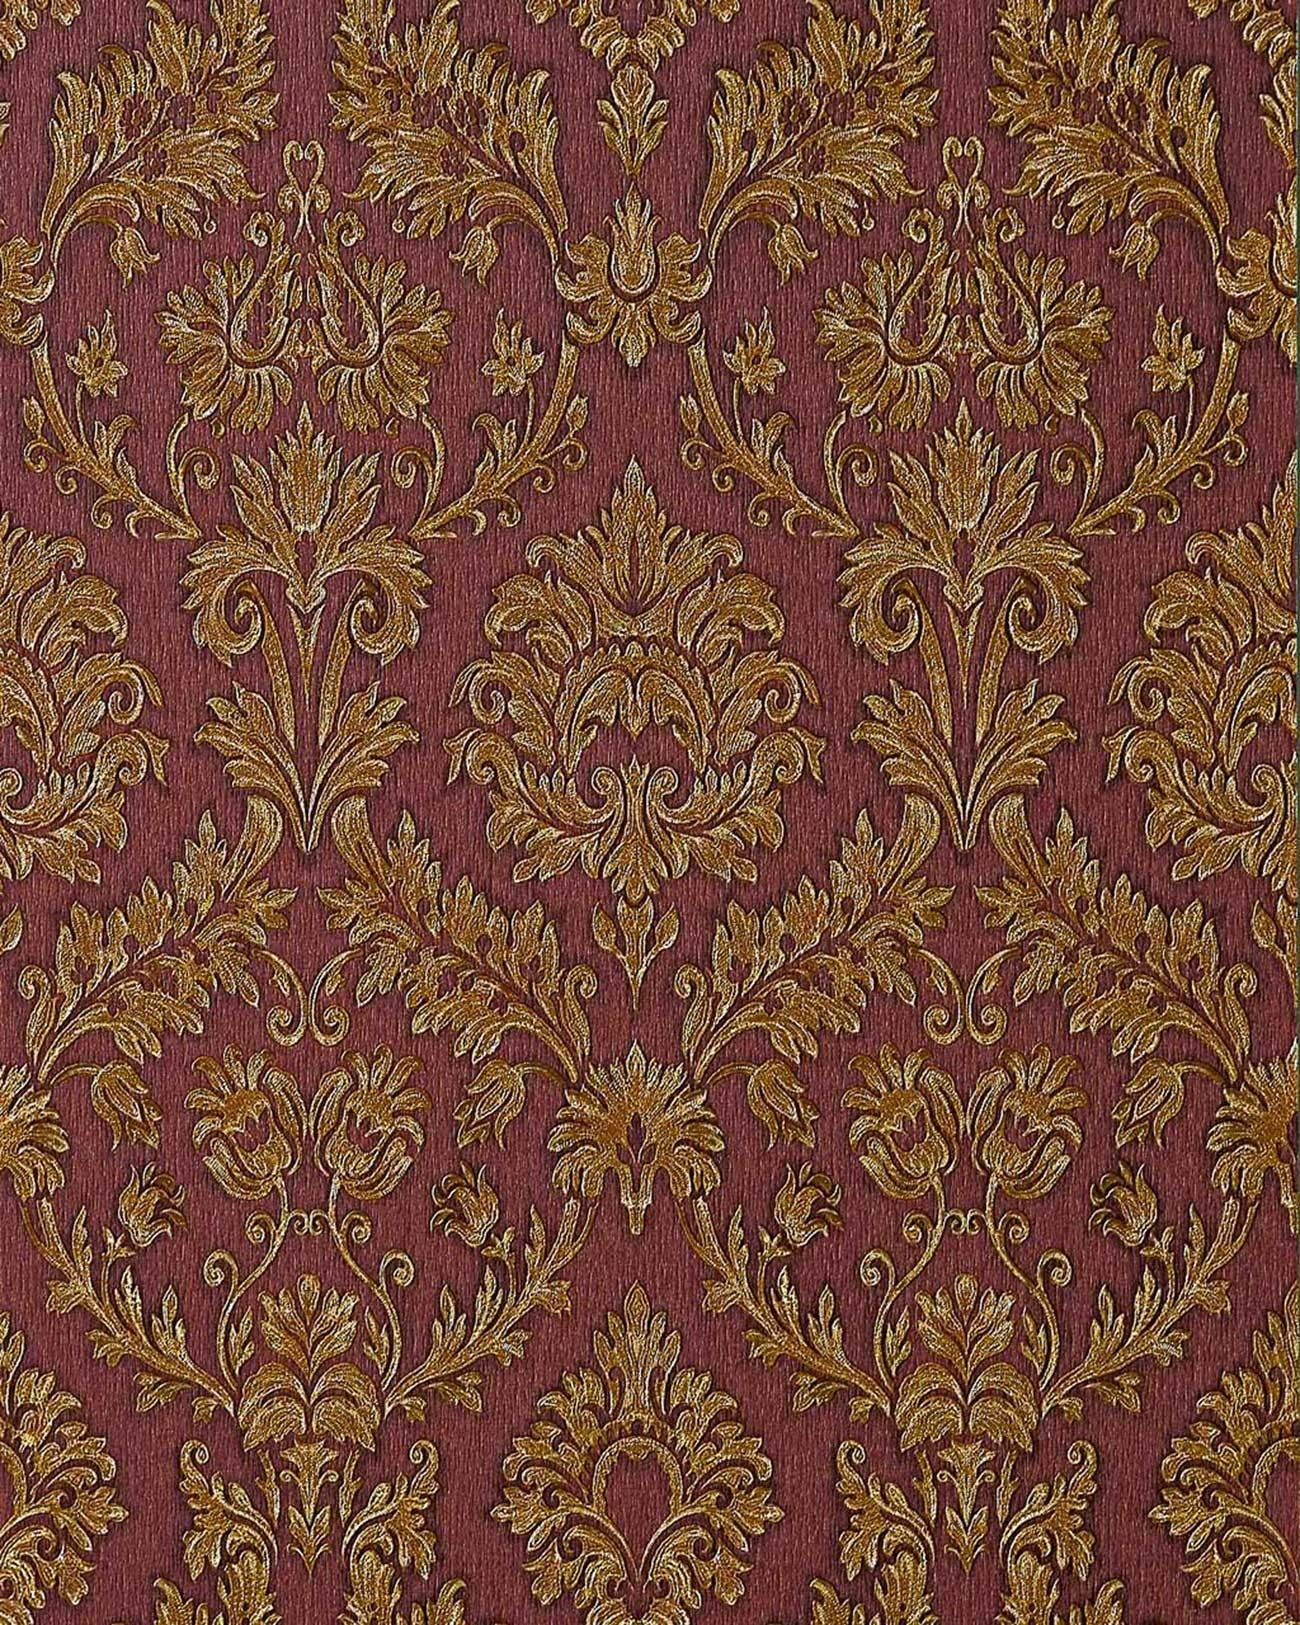 Orientalische Ornamente Tapete : Red and Gold Damask Wallpaper